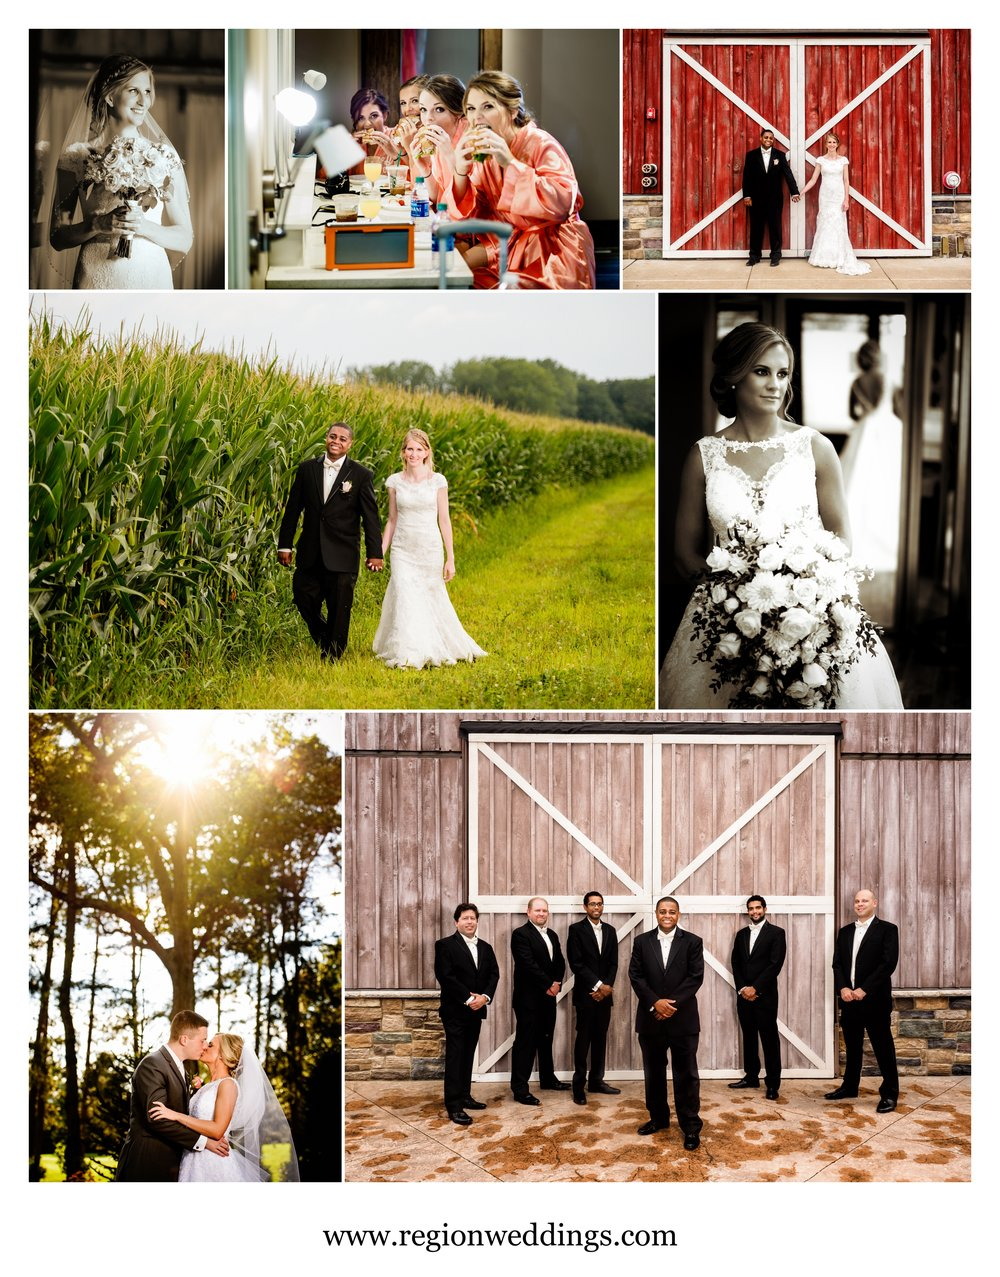 Northwest Indiana wedding photos in August of 2016.